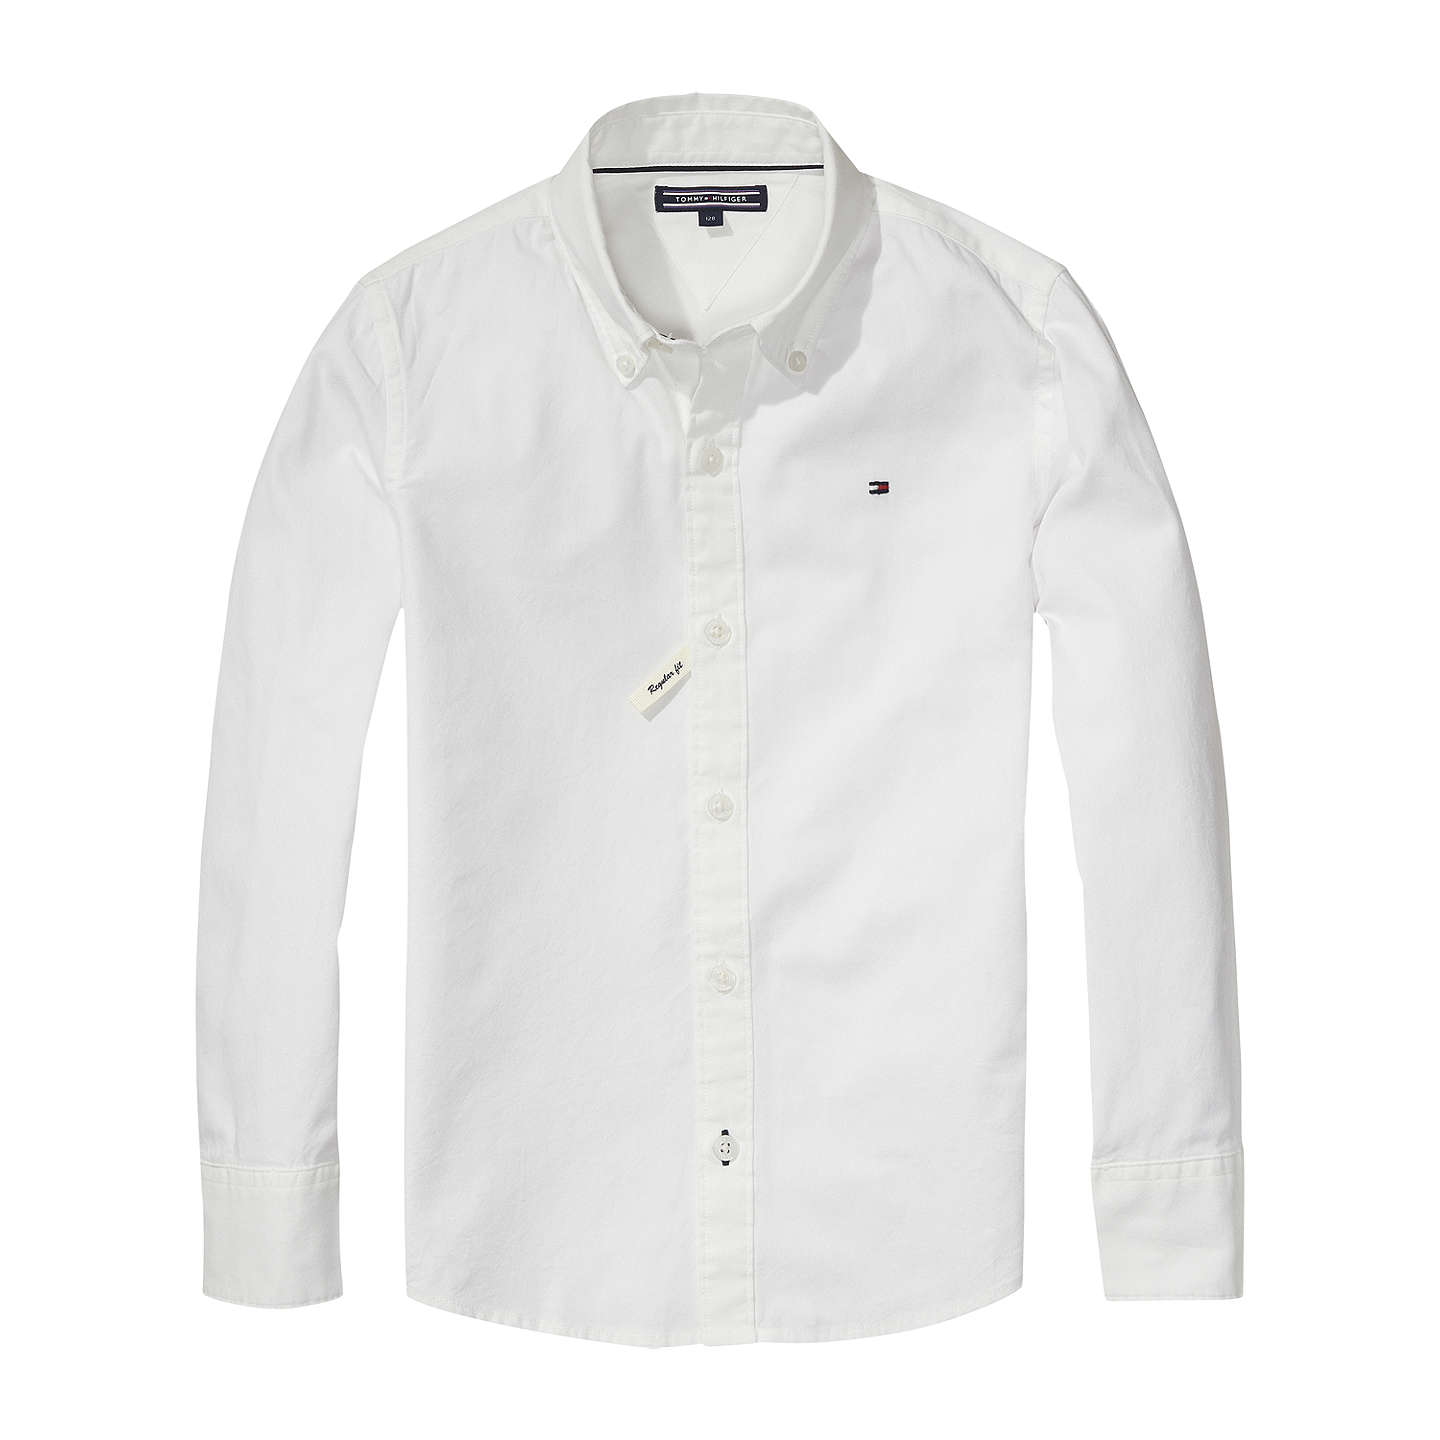 Tommy Hilfiger Boys Oxford Shirt White at John Lewis